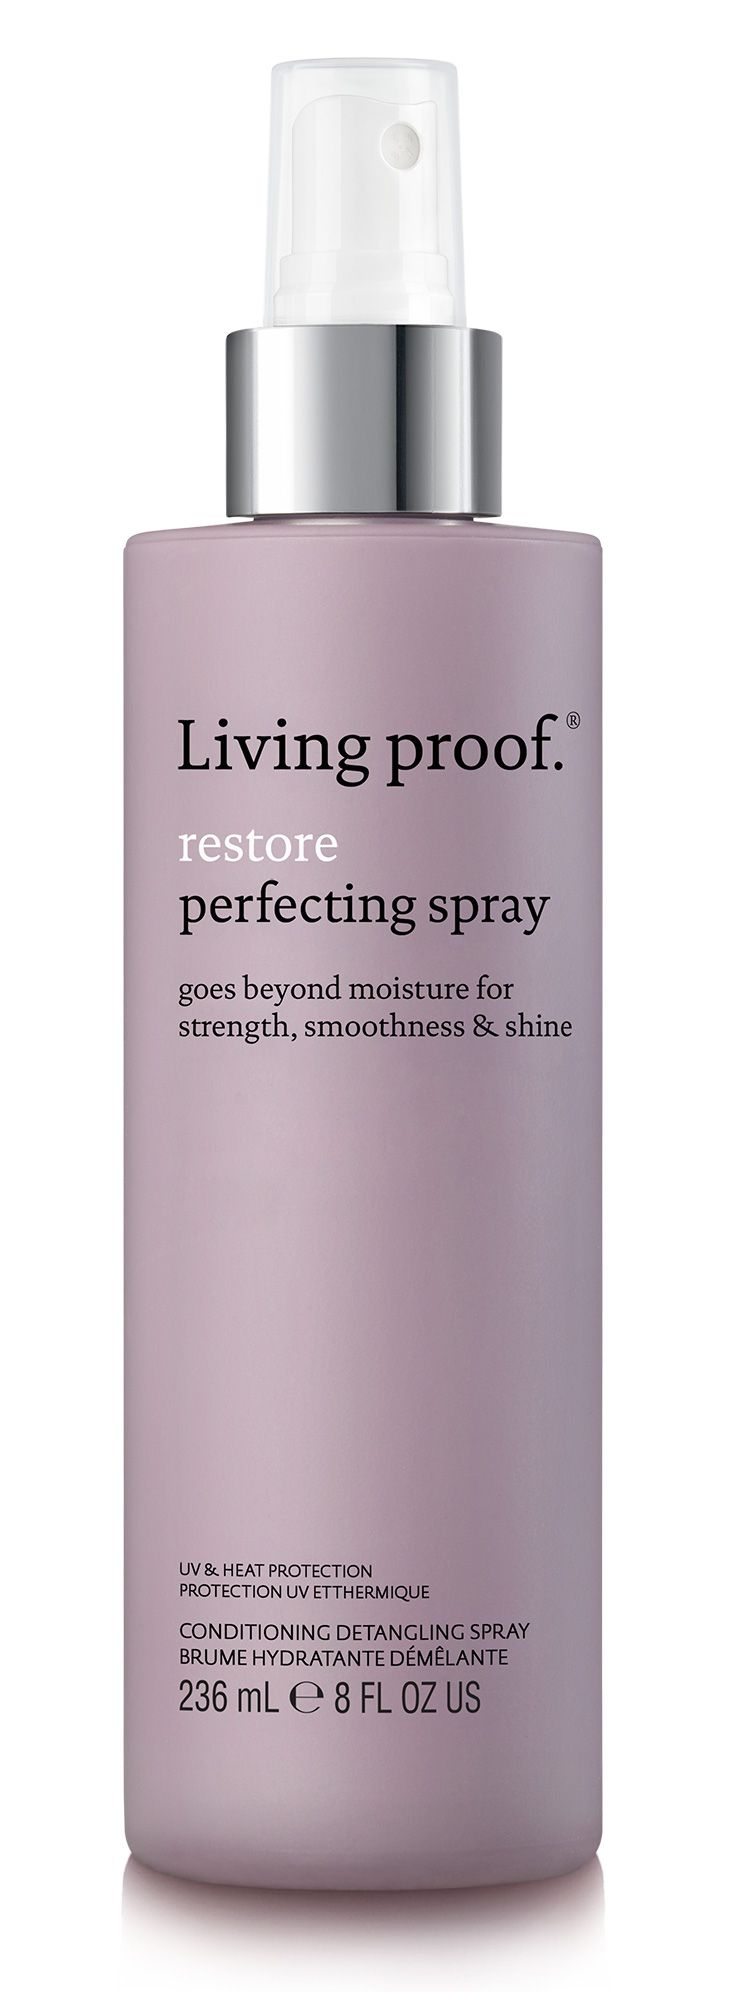 Say goodbye to dry, damaged hair. Restore Perfecting Spray goes beyond moisture to give you strong, smooth and shiny strands—fast.